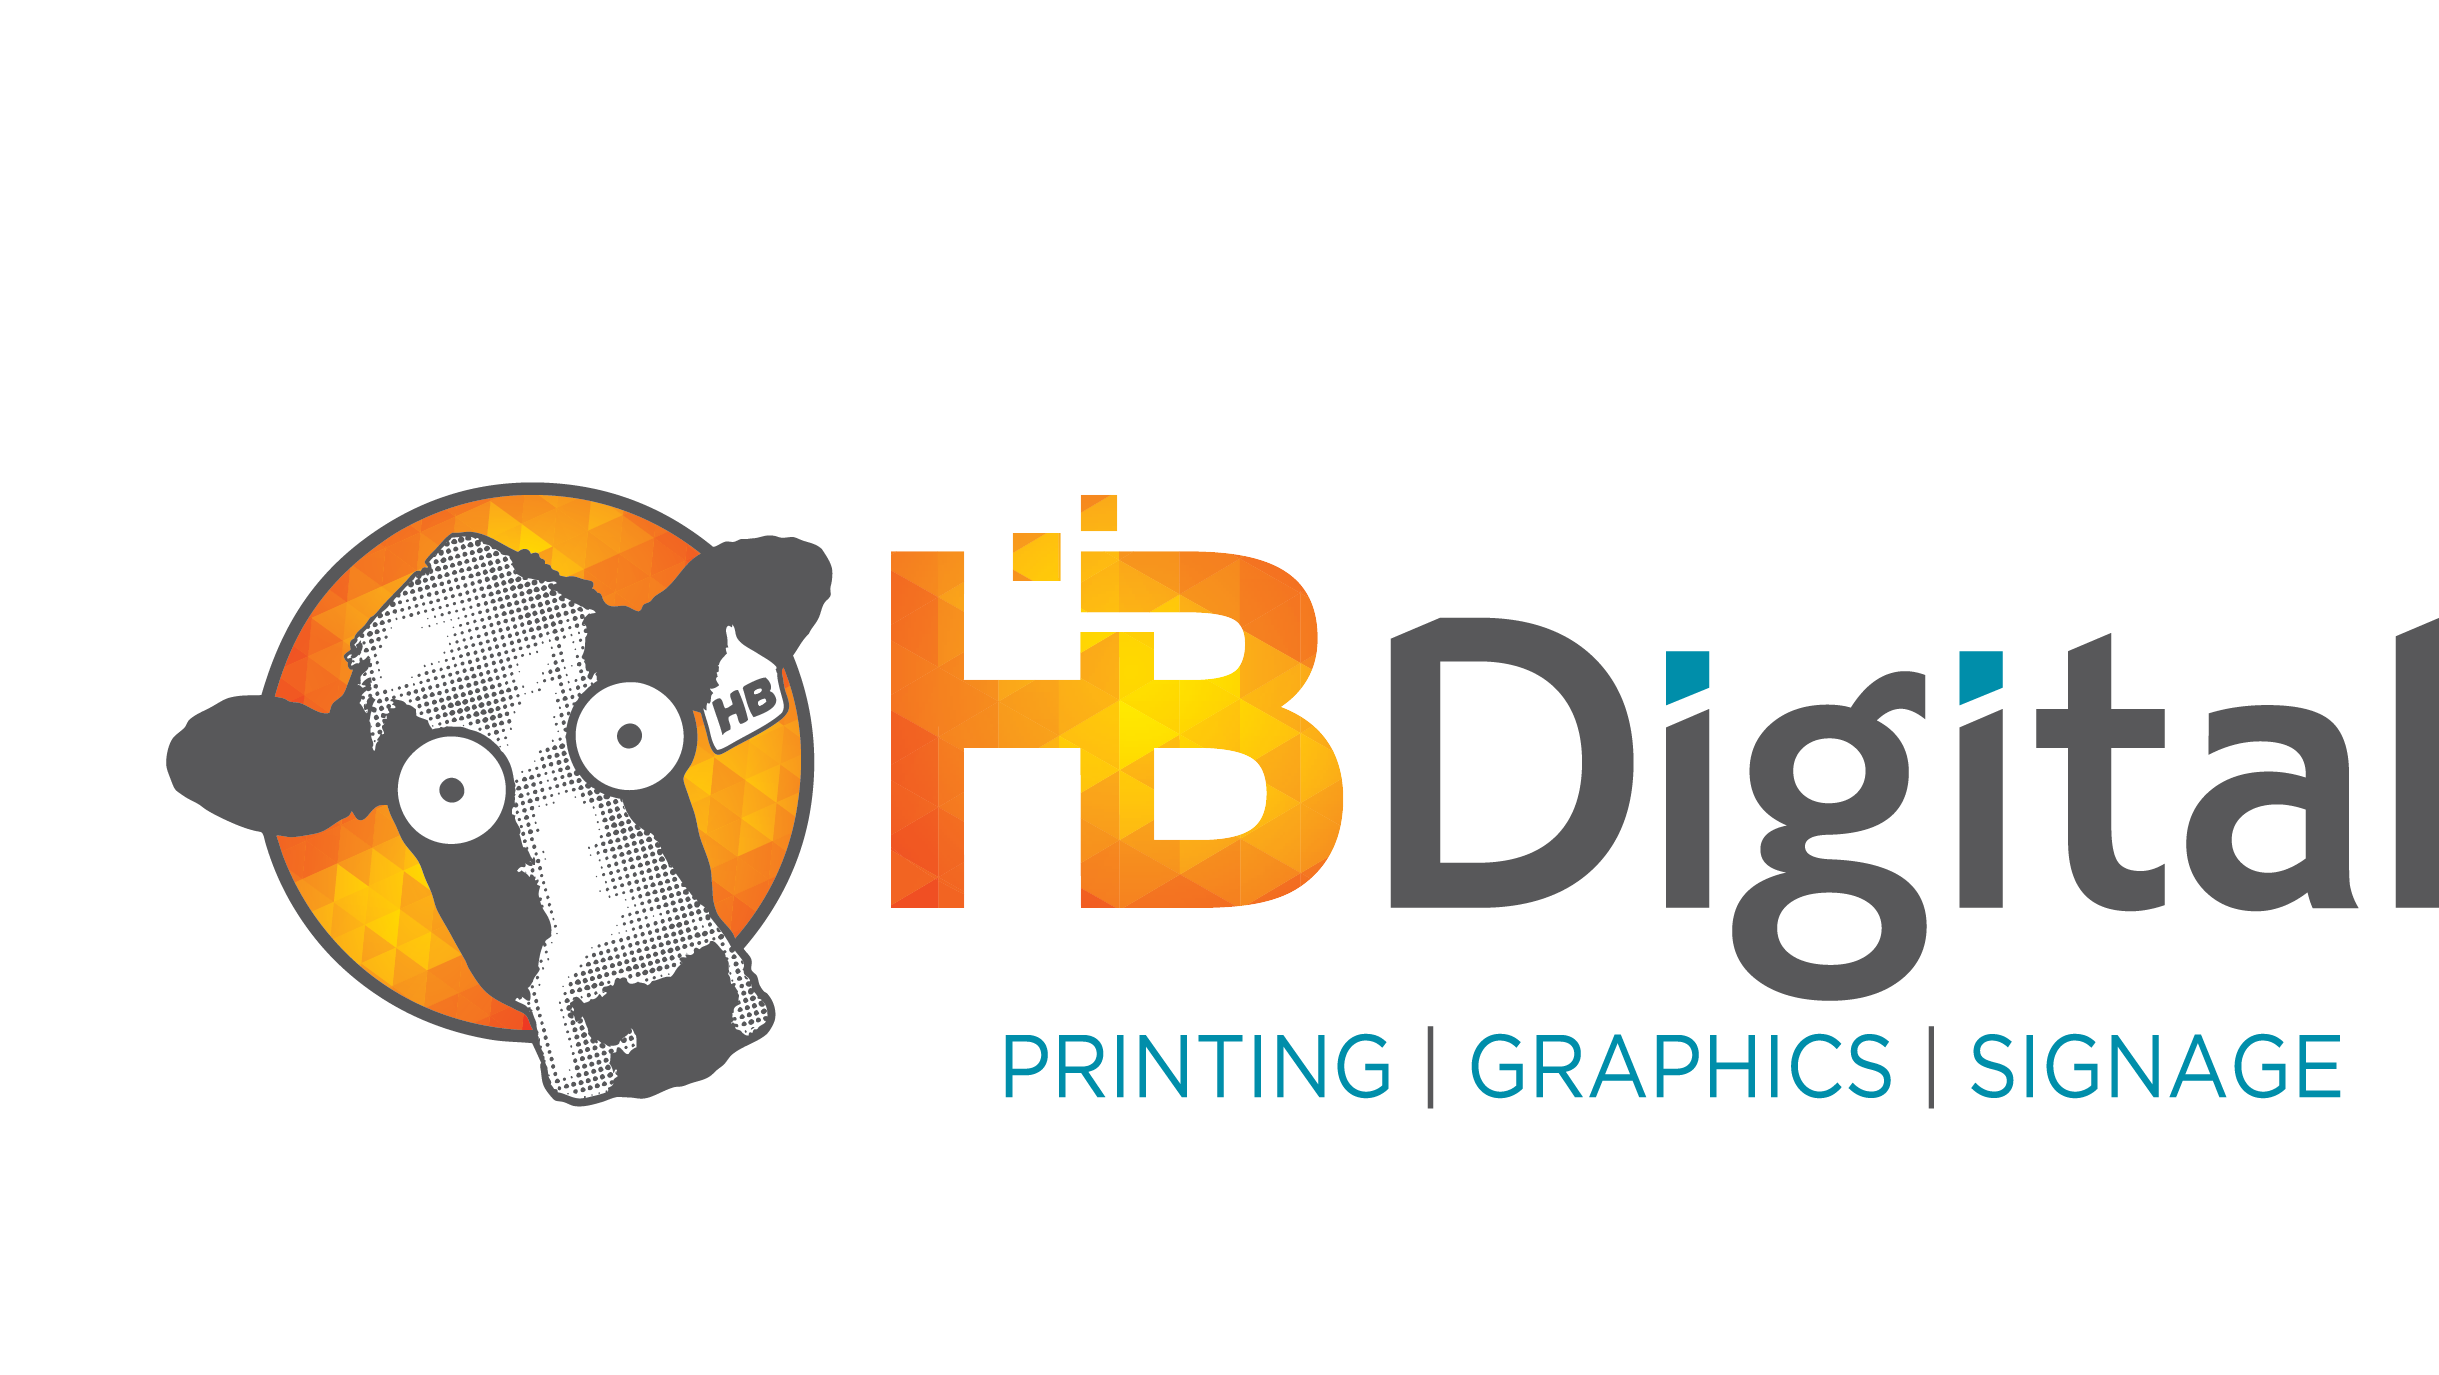 hb-digital-logo-with-cow.png